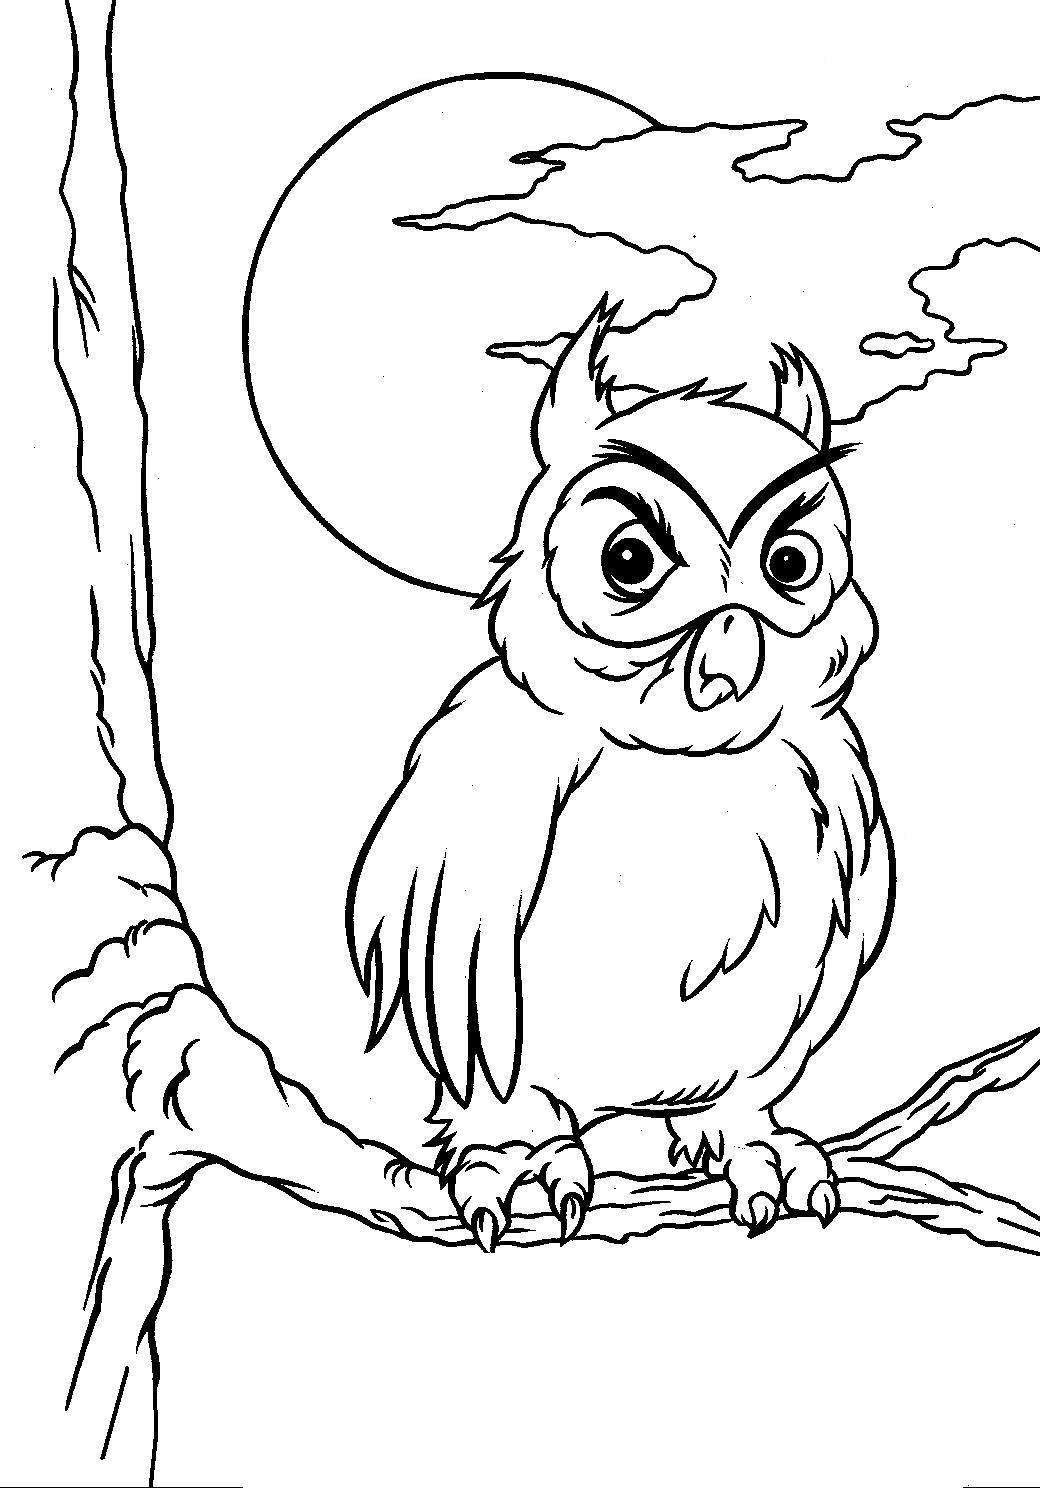 Angry Owl Coloring Page For Halloween Activities